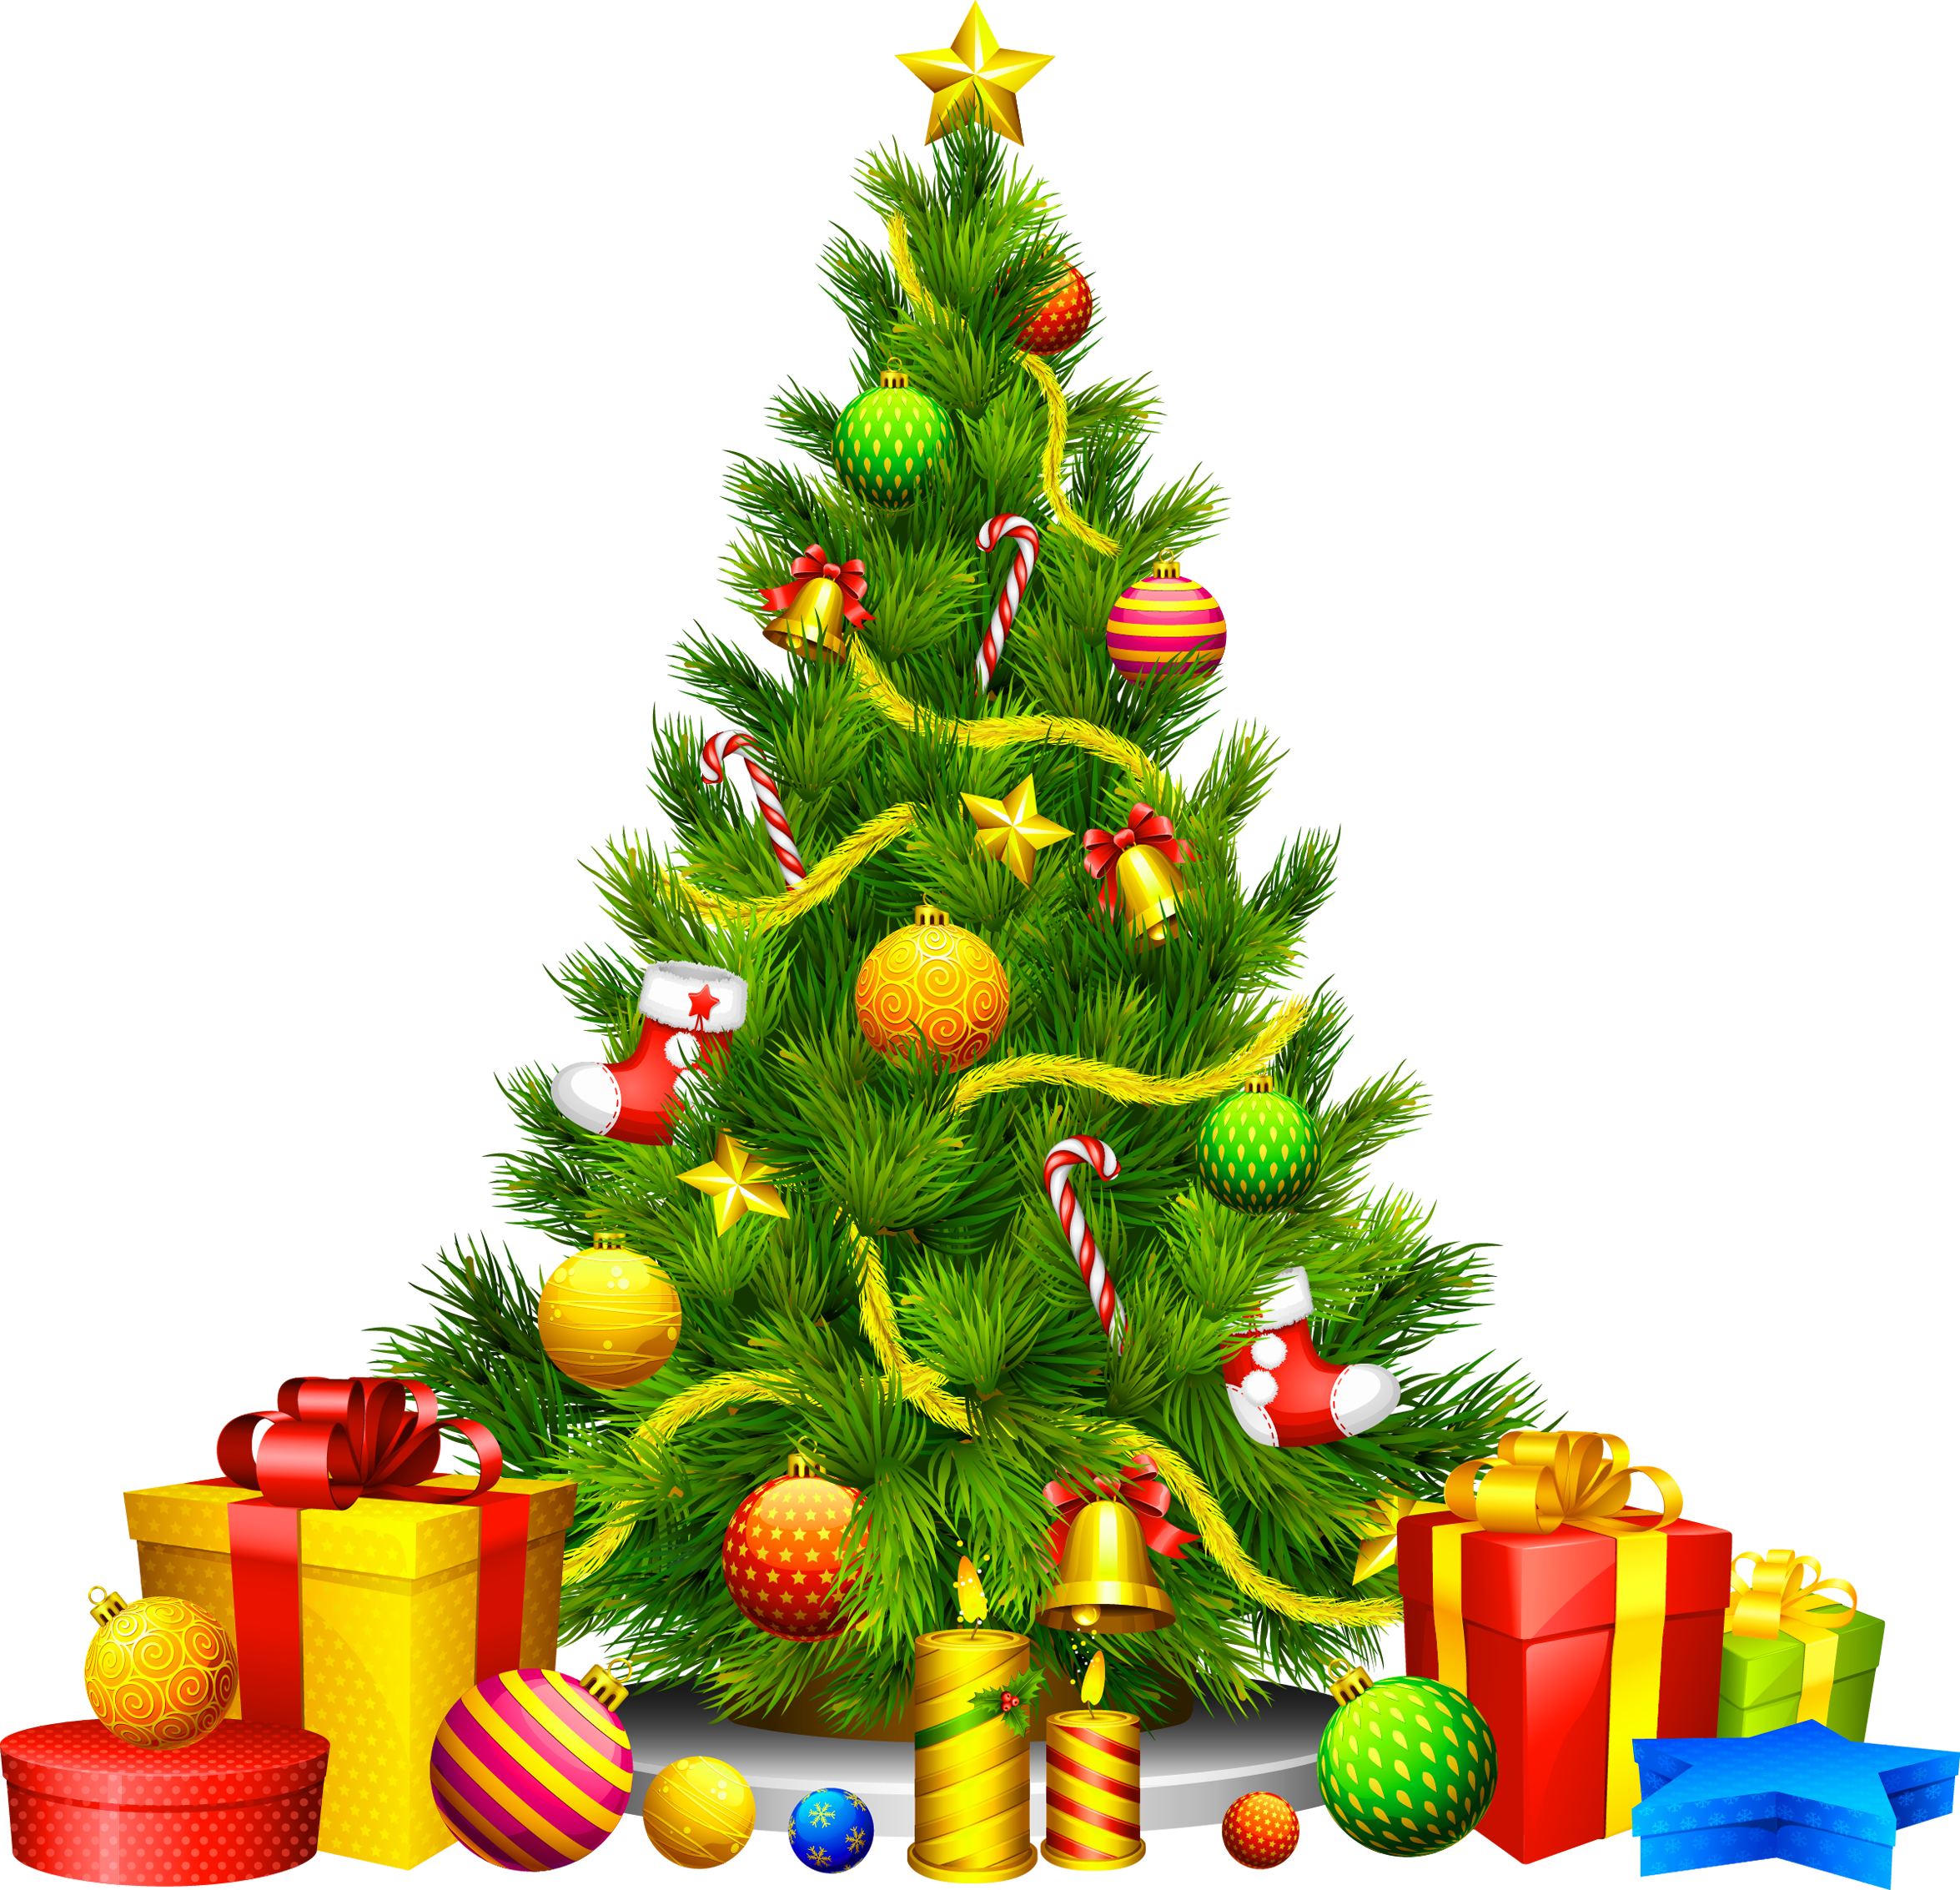 Large Transparent Christmas Tree with Presents Clipart | Gallery ...